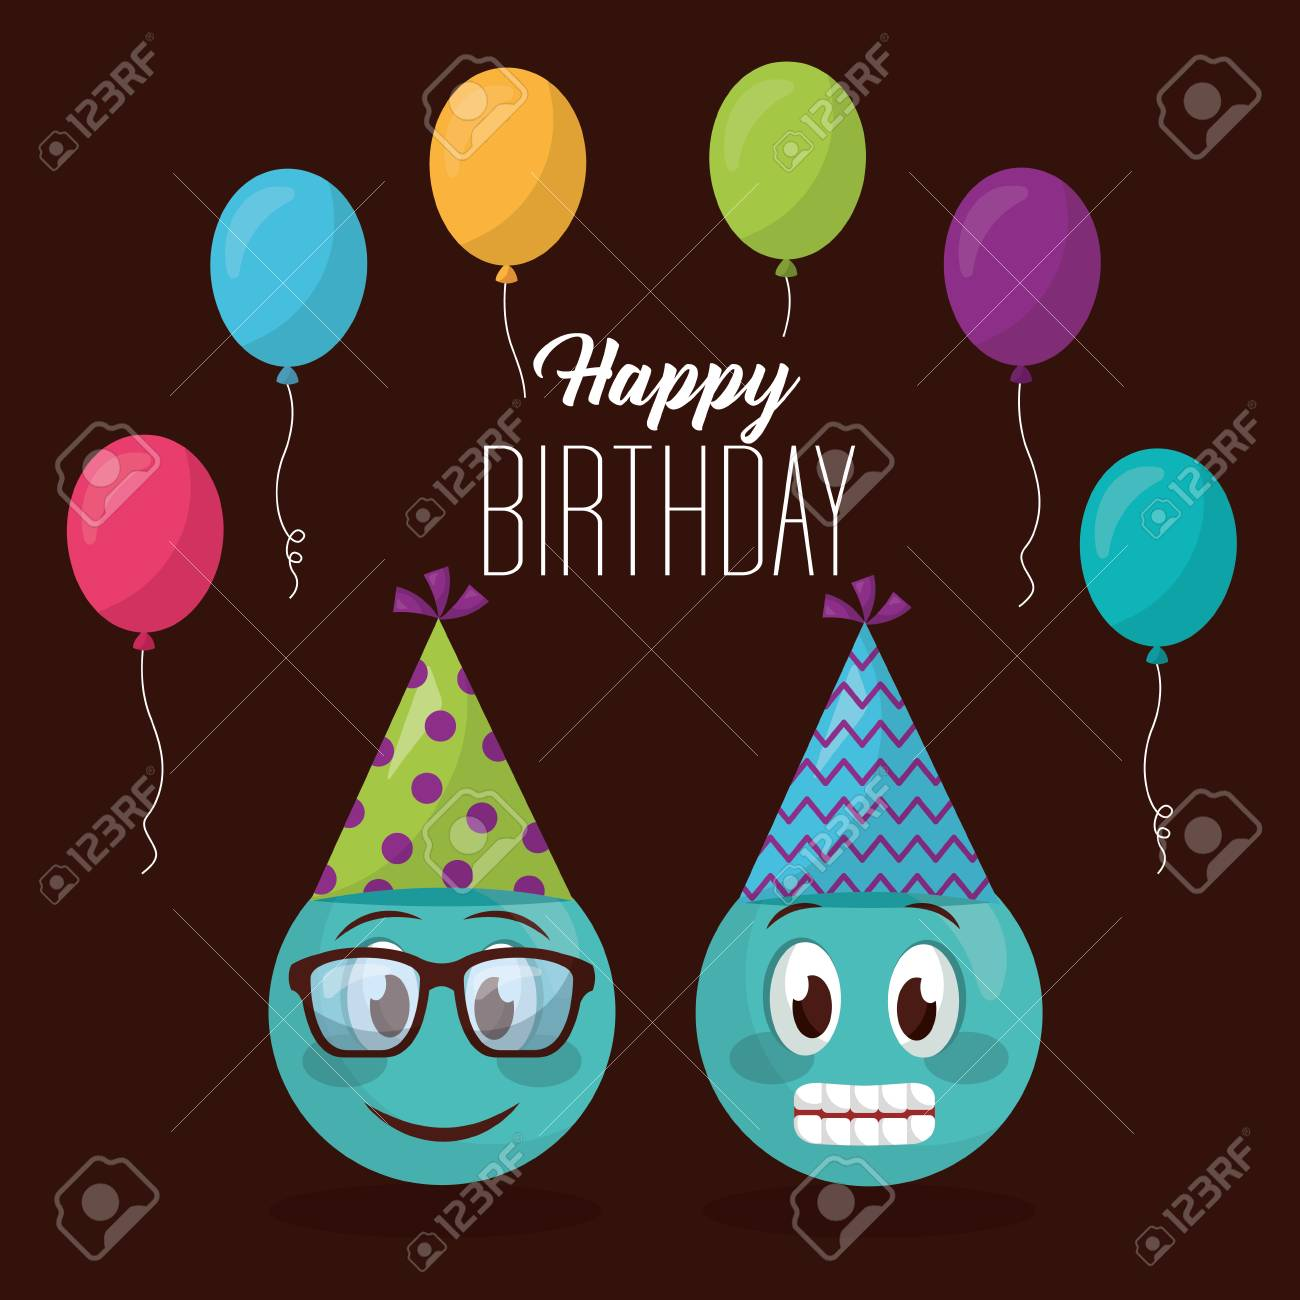 Happy Birthday Balloons Colors Party Hat Emojis Smiling Using Glasses Vector Illustration Stock